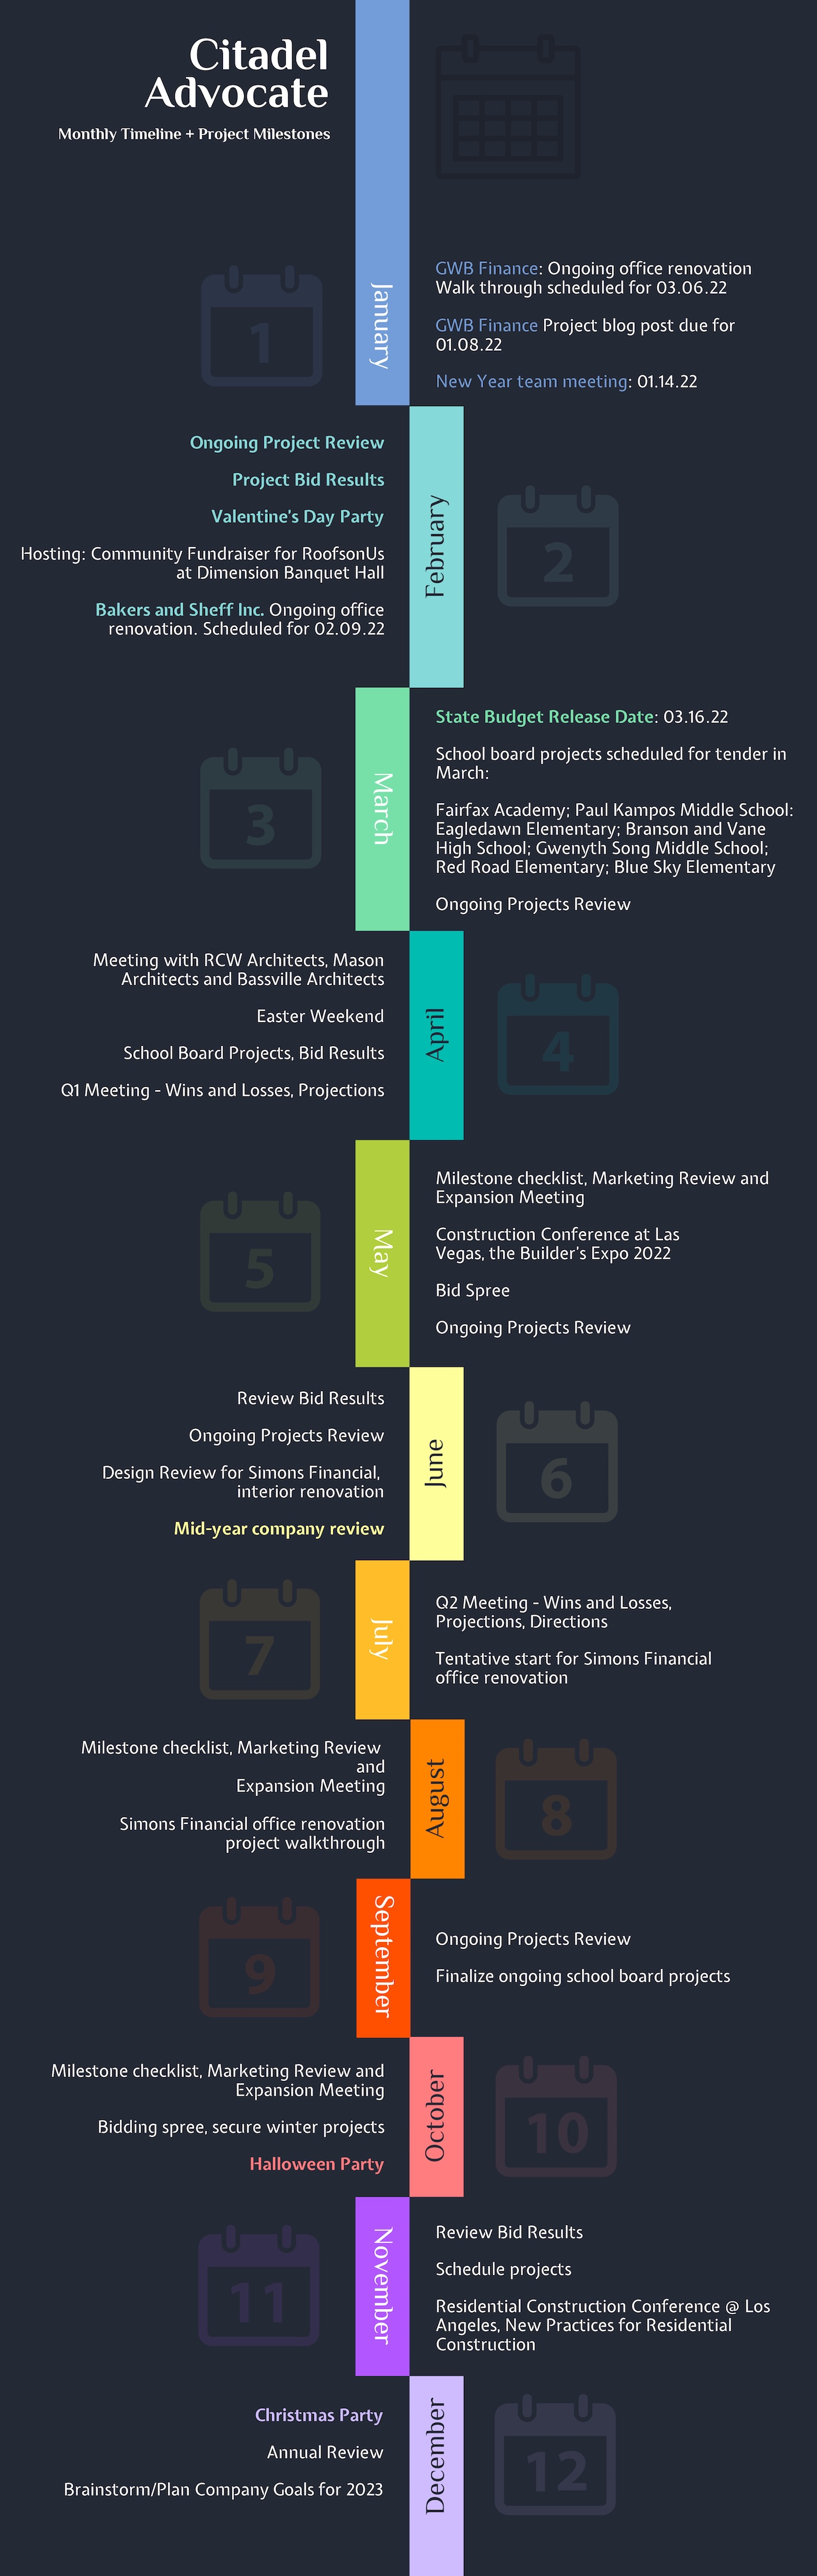 15+ Timeline Infographic Design Examples & Ideas - Daily ...